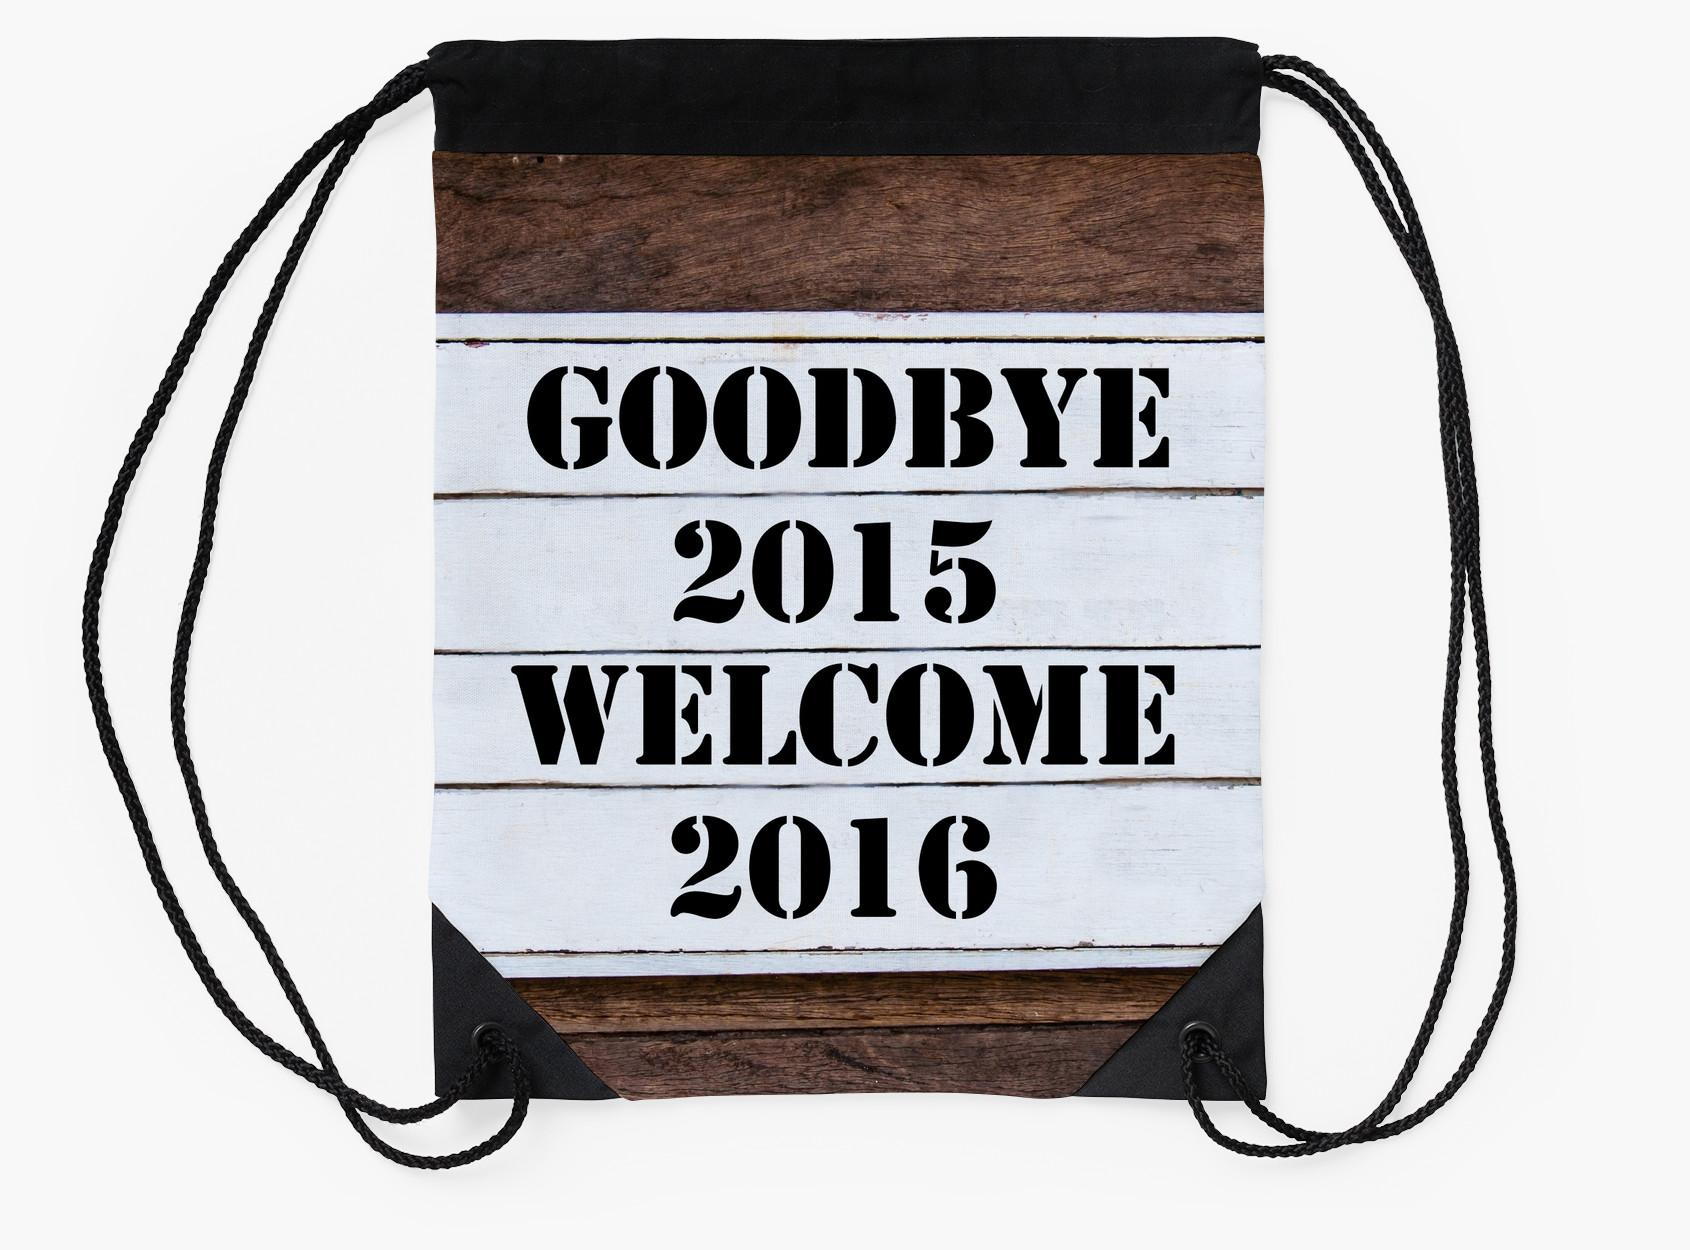 Goodbye-2015-welcome-2016-pictures